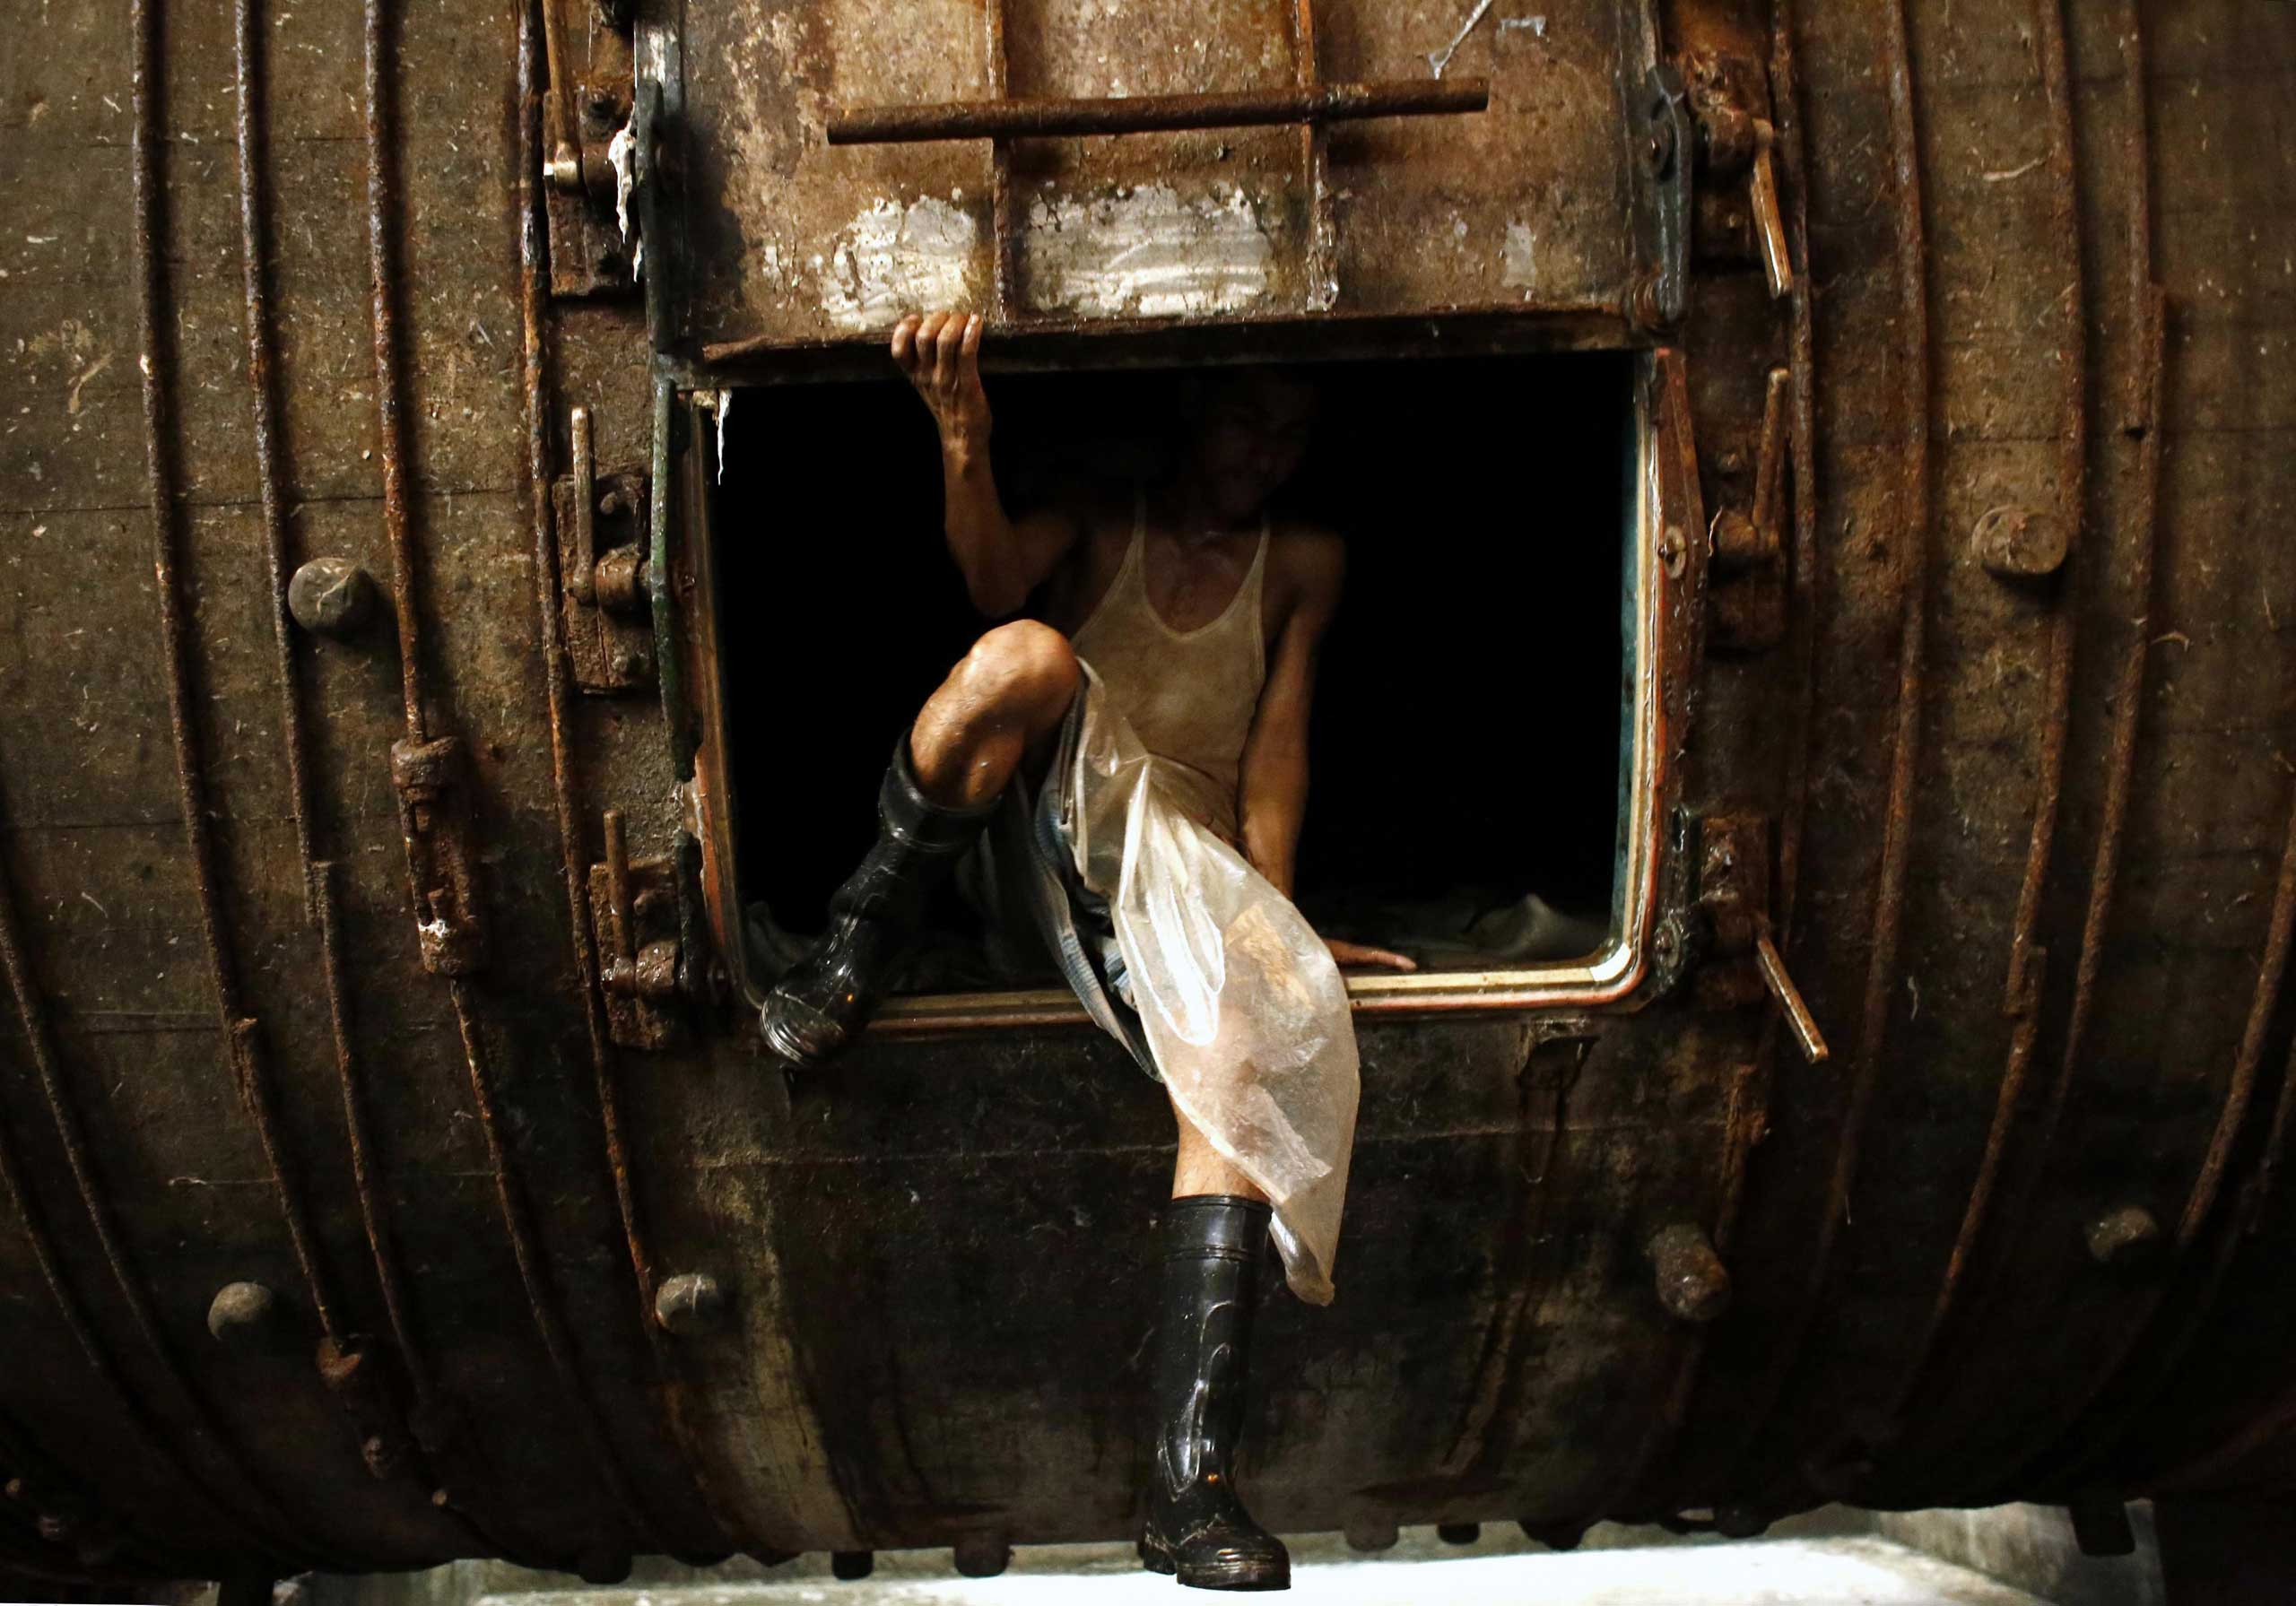 Oct. 8, 2014. A Worker comes out of a tank as he processes animal skins slaughtered during the Eid Al Adha, at a Leather factory in Hazaribagh, Dhaka, Bangladesh.